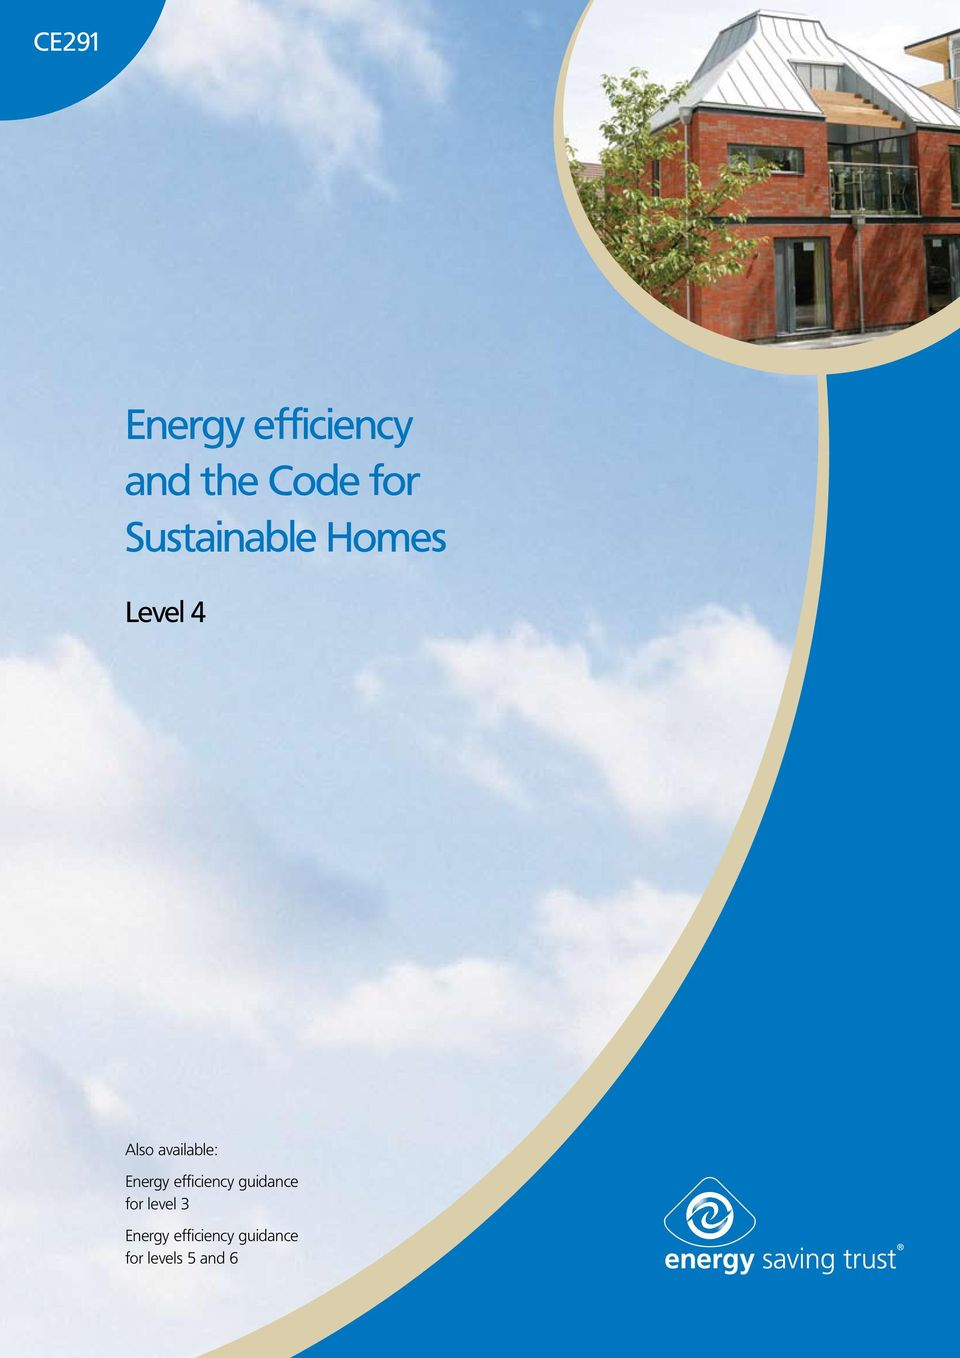 Energy efficiency guidance for level 3